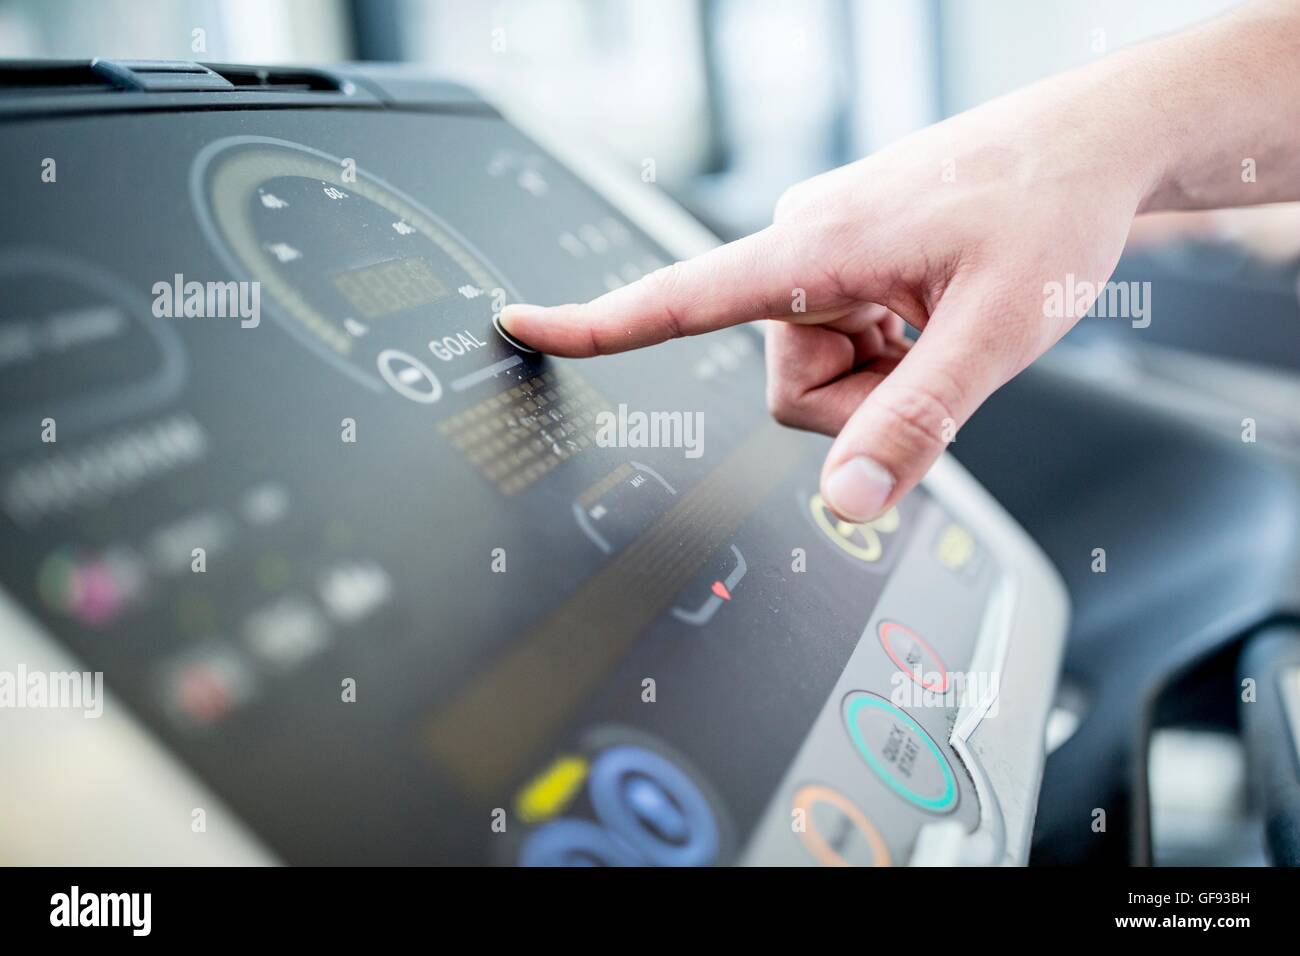 PROPERTY RELEASED. Man pushing control panel button of exercise machine, close-up. - Stock Image